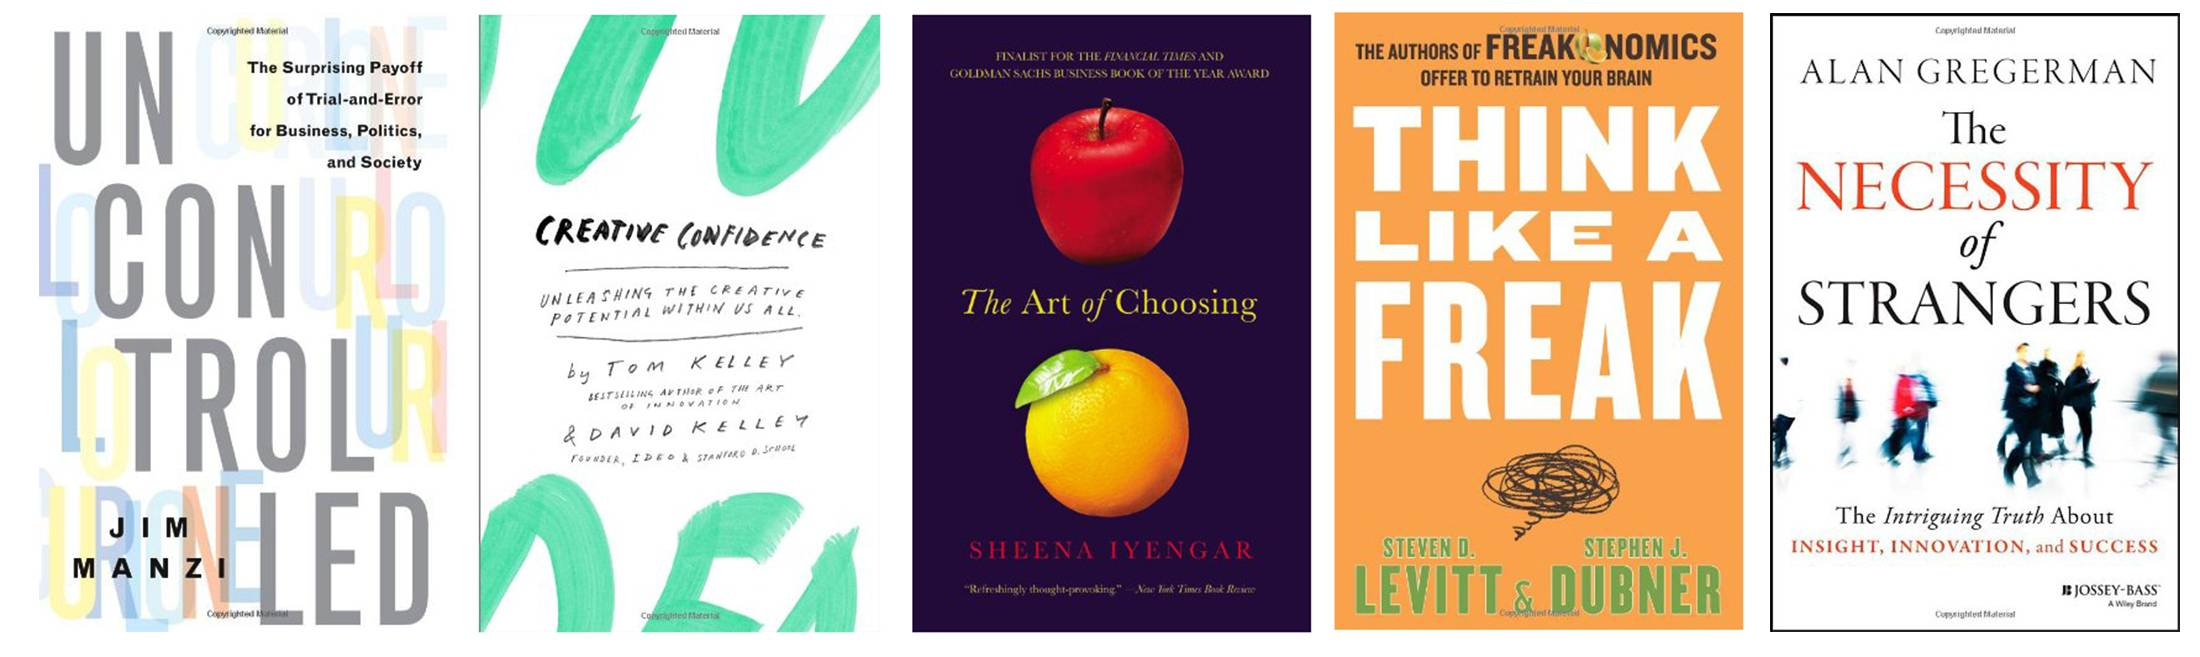 """Uncontrolled,"" by Jim Manzi; ""Creative Confidence,"" by David Kelley and Tom Kelley; ""The Art of Choosing,"" by Sheena Iyengar; ""Think Like a Freak: The Authors of Freakonomics Offer to Retrain Your Brain,"" by Steven D. Levitt and Stephen J. Dubner; and ""The Necessity of Strangers,"" by Alan Gregerman."